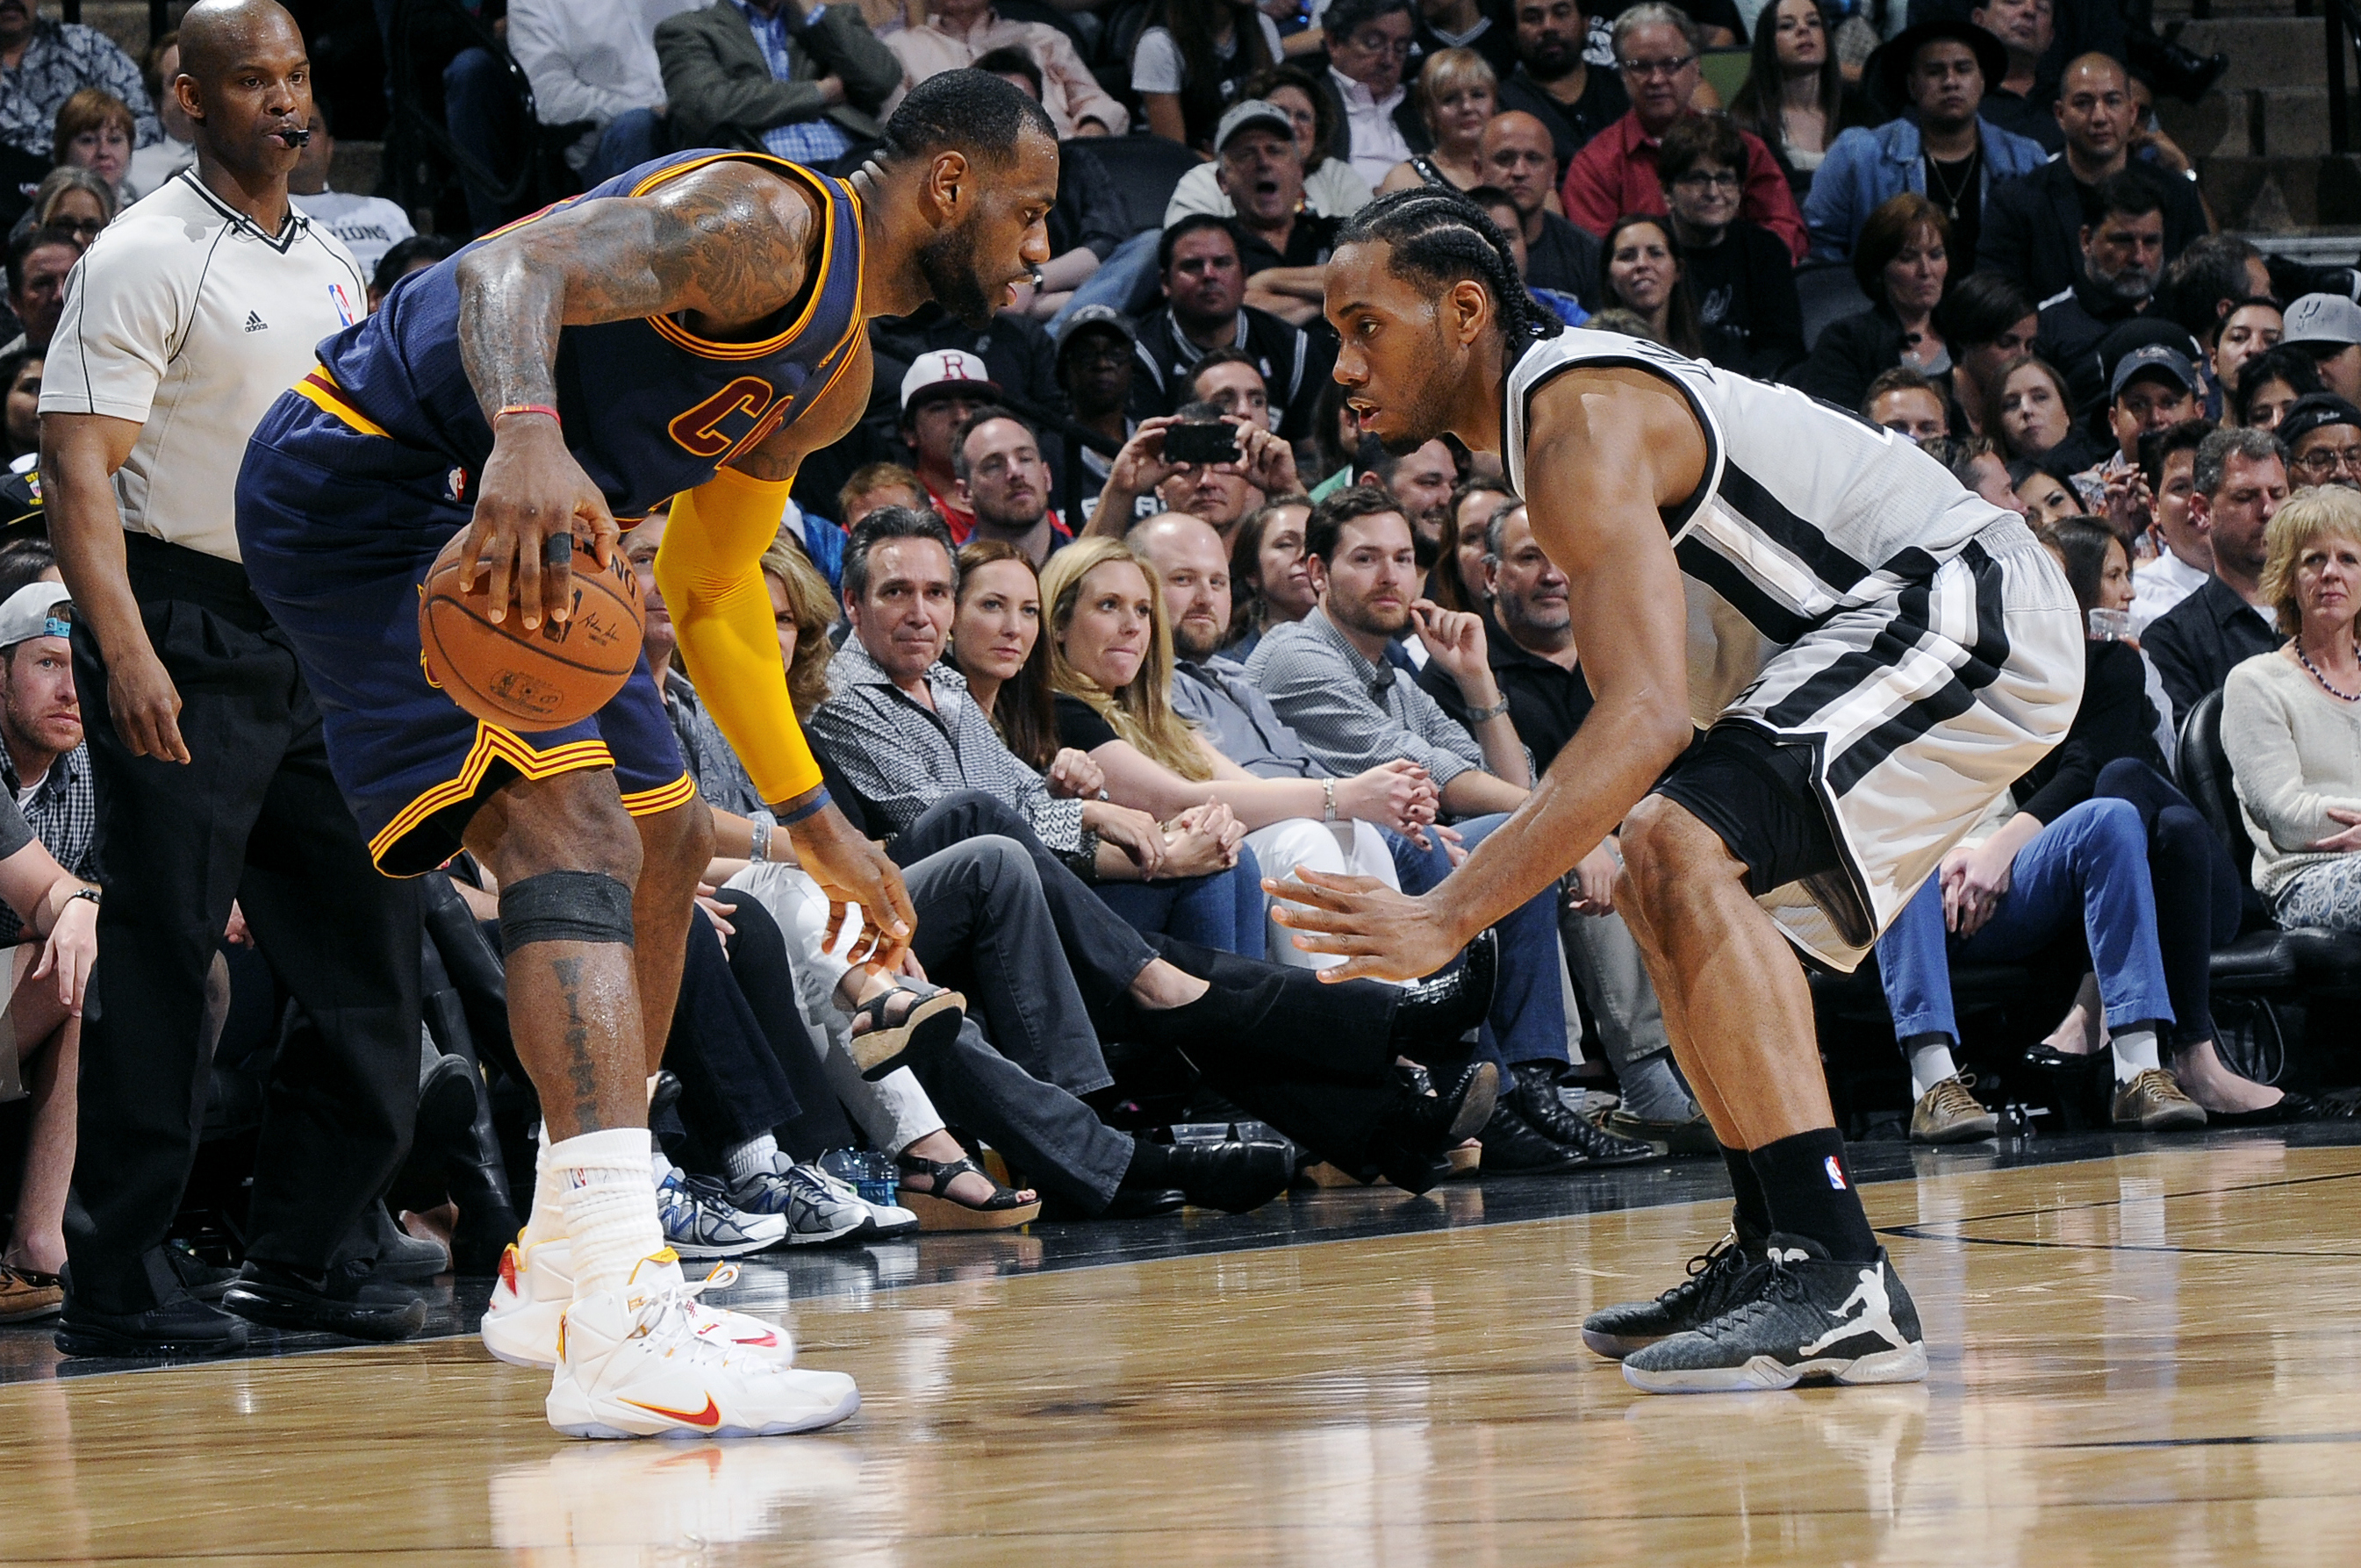 Lebron James Kawhi Leonard Rivalry Evolving Into Battle Of Equals Bleacher Report Latest News Videos And Highlights